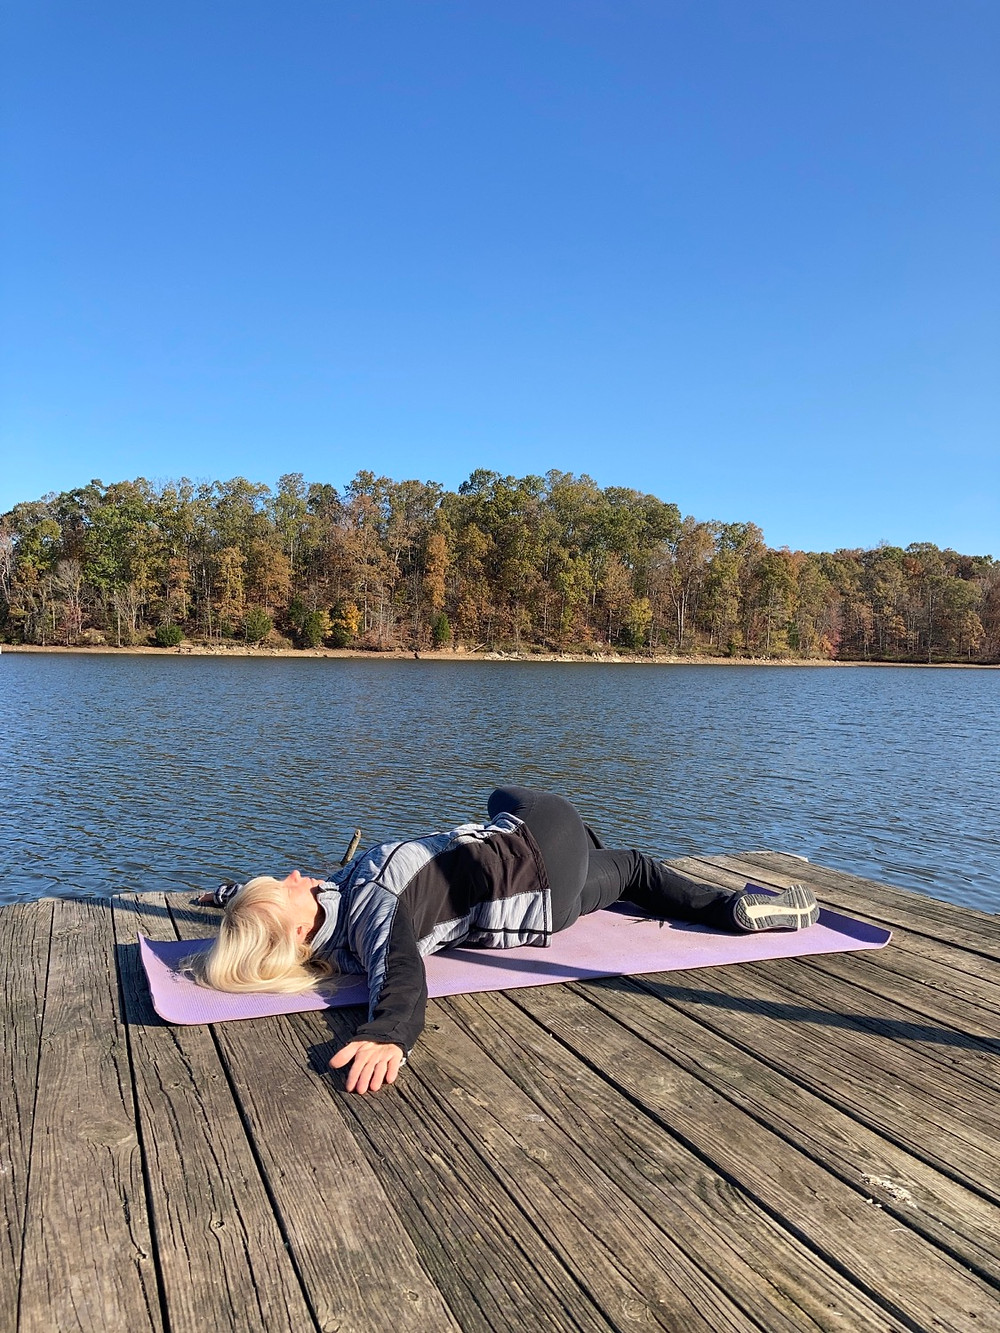 Outdoor Yoga - boat docks are great places to practice yoga outdoors